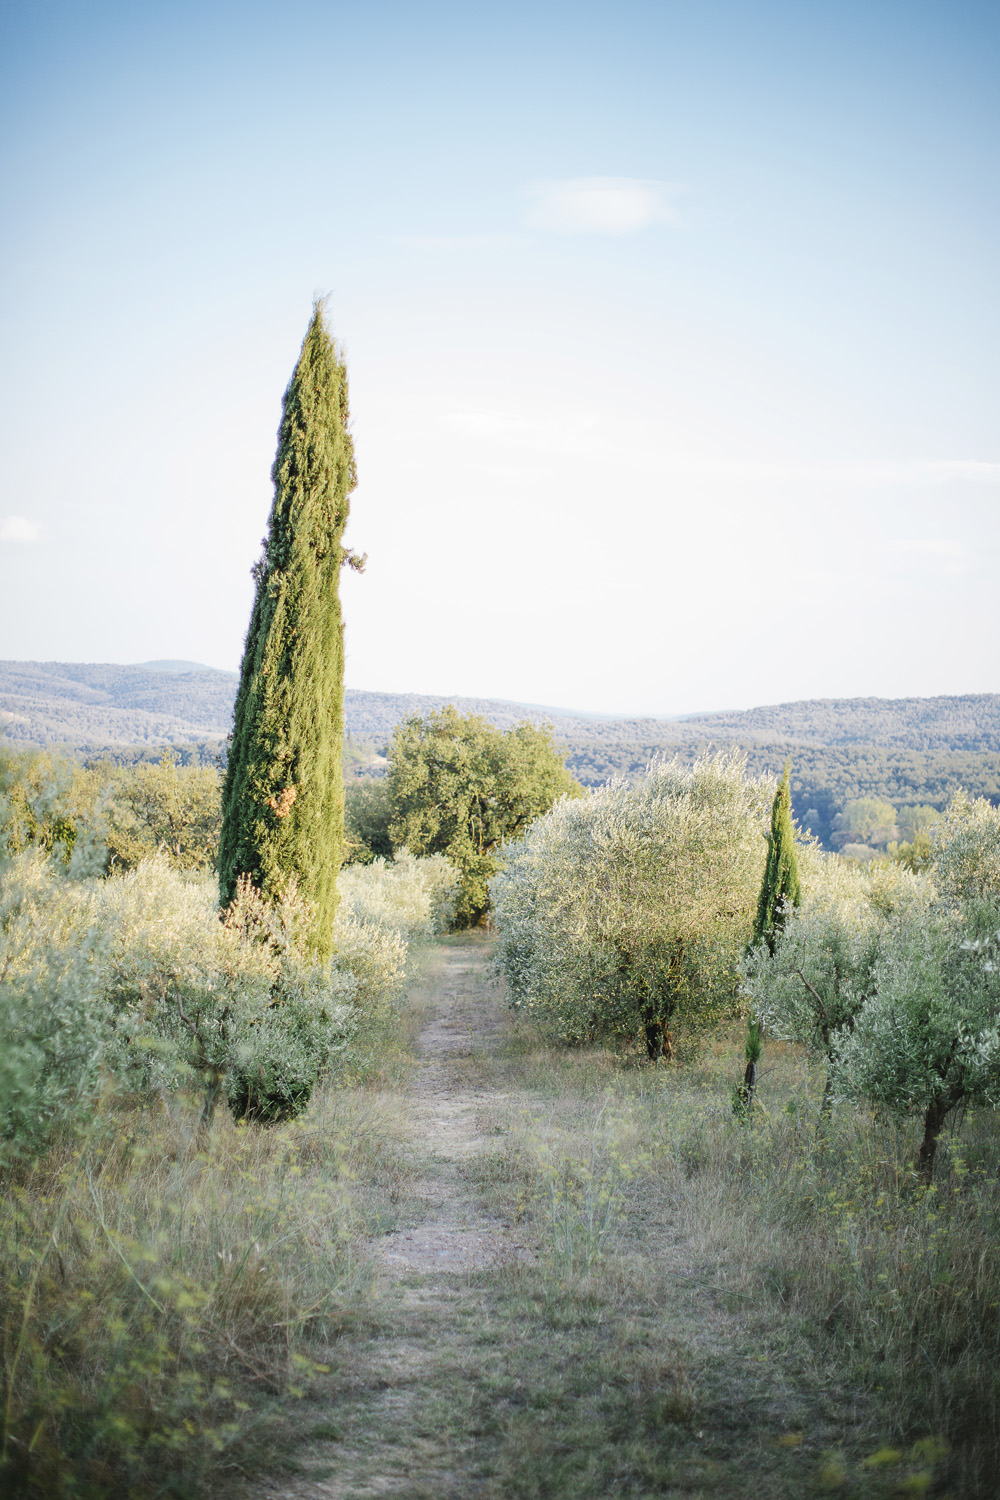 Wwedding in a Farmhouse in Tuscany